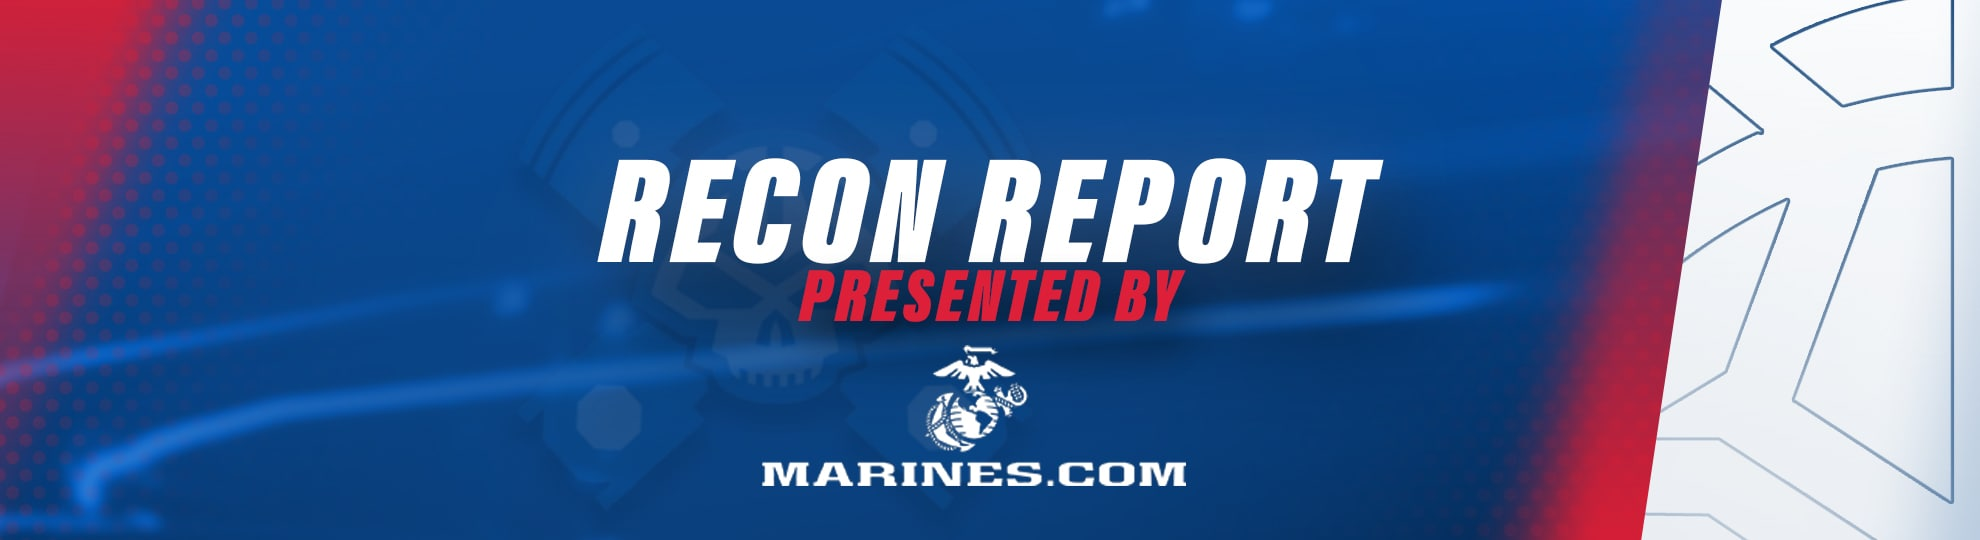 Recon Report presented by Marines.com